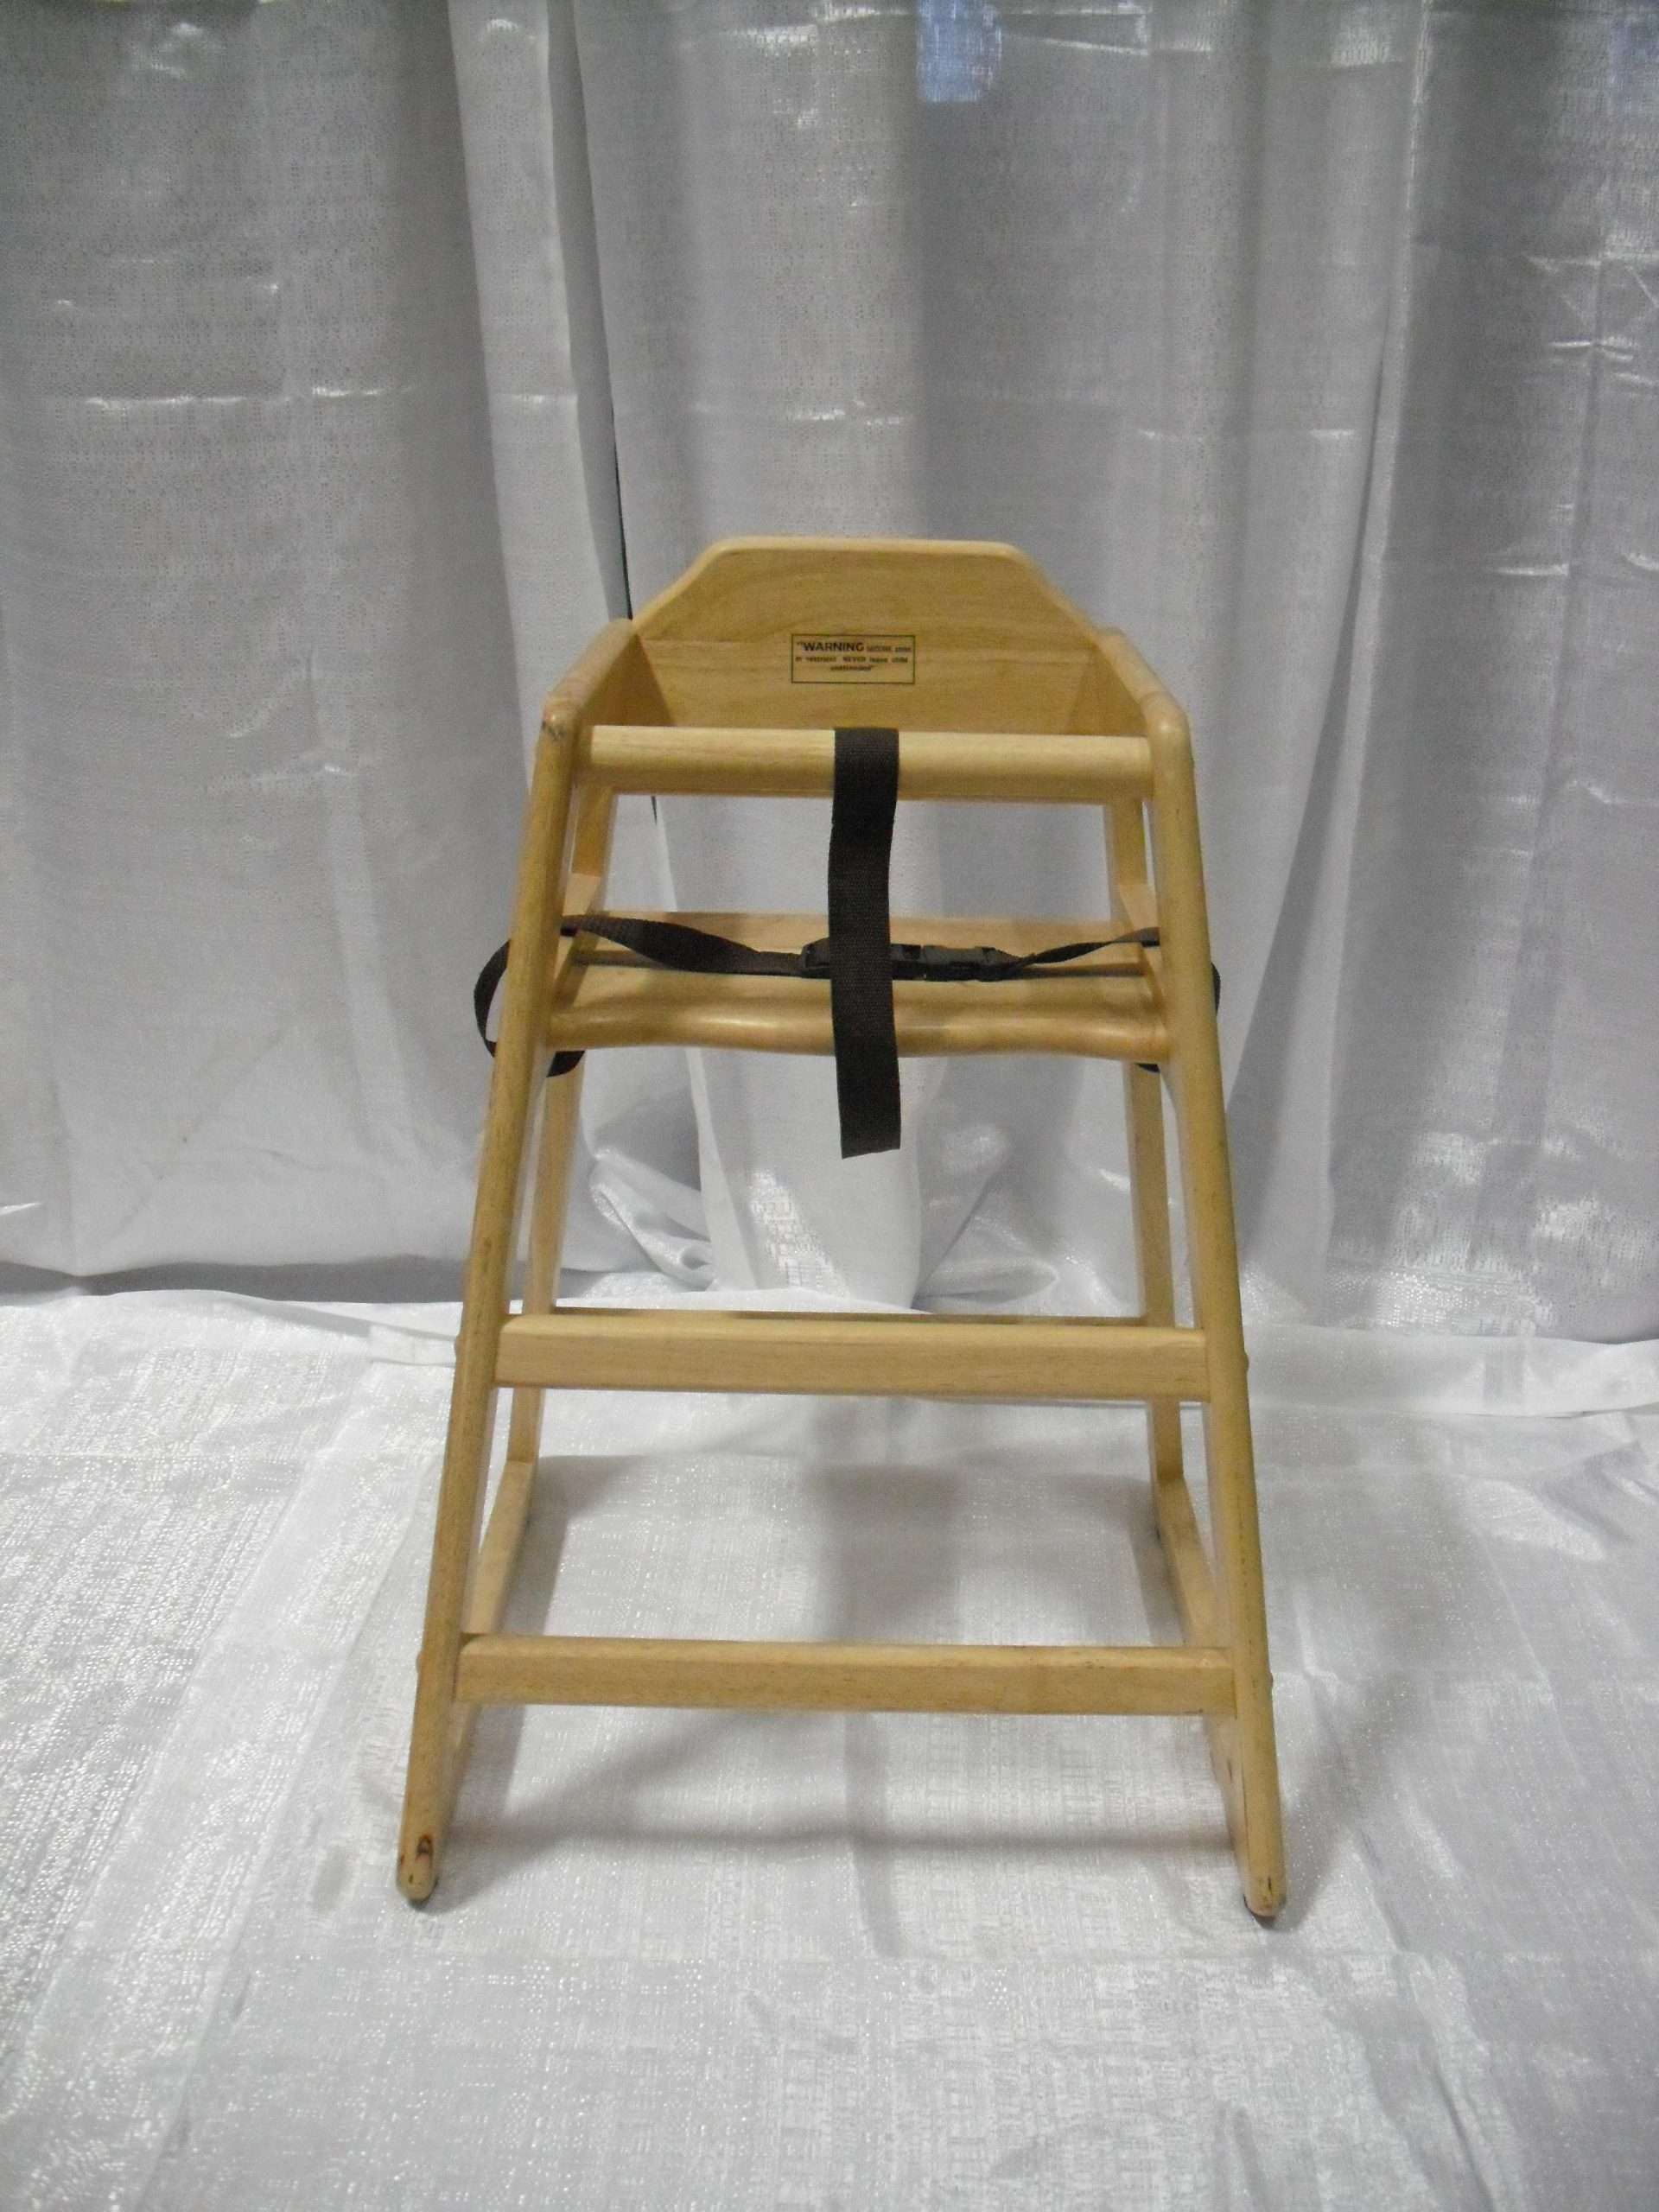 Superb img of wooden high chair 10 00 add to cart category chairs with #684D21 color and 2736x3648 pixels